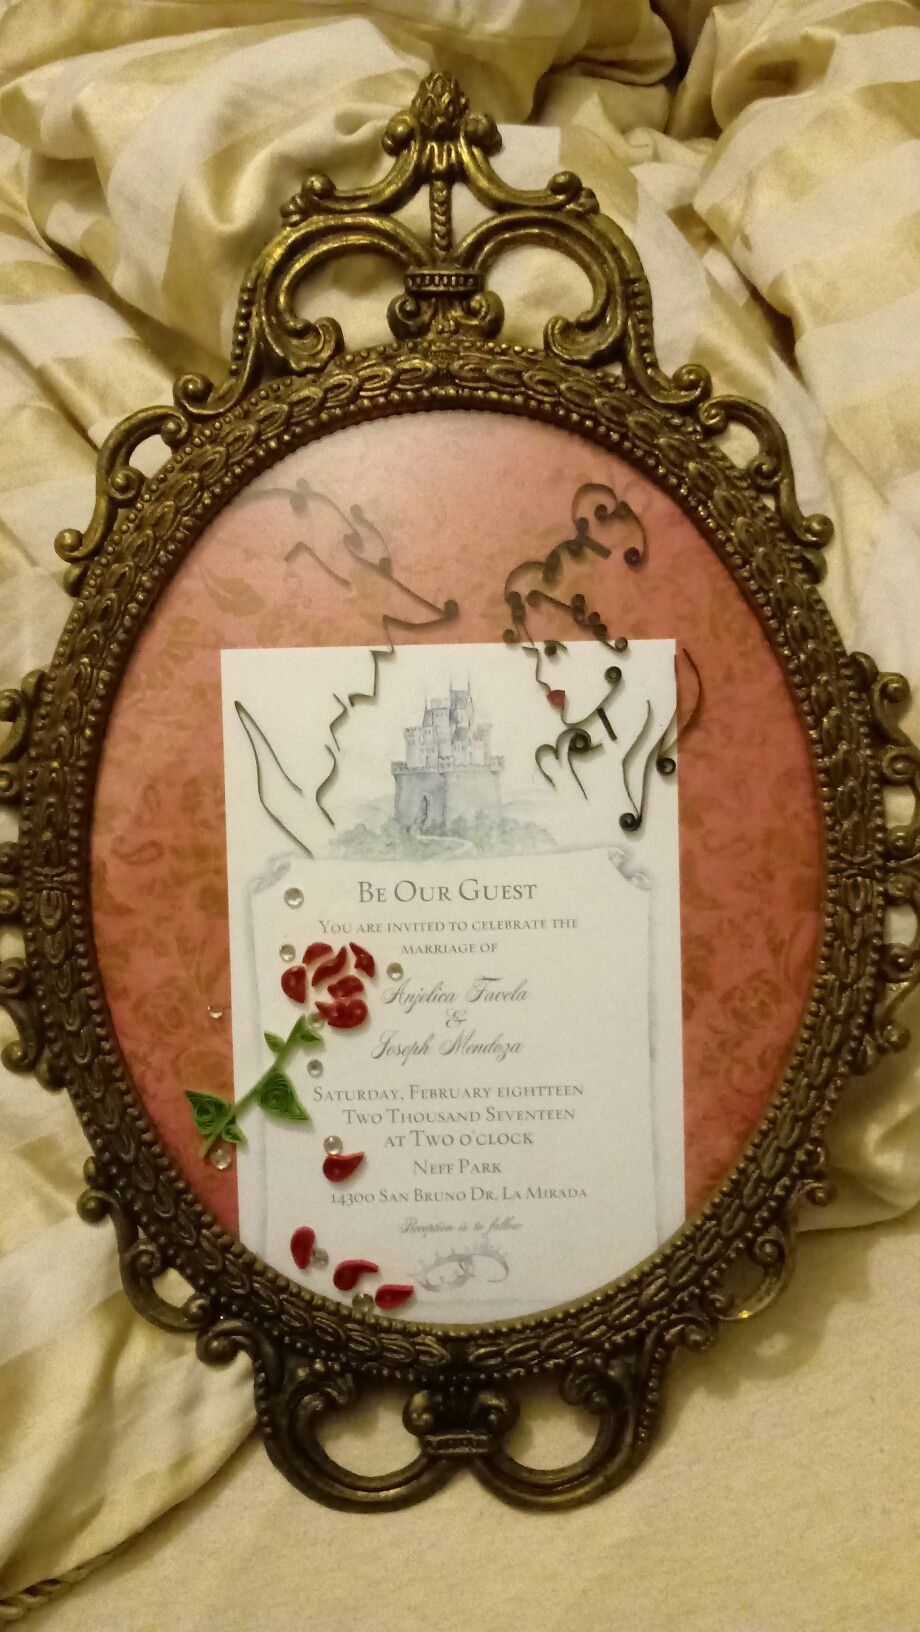 Wedding Invitation For A Beauty And The Beast Wedding Artist